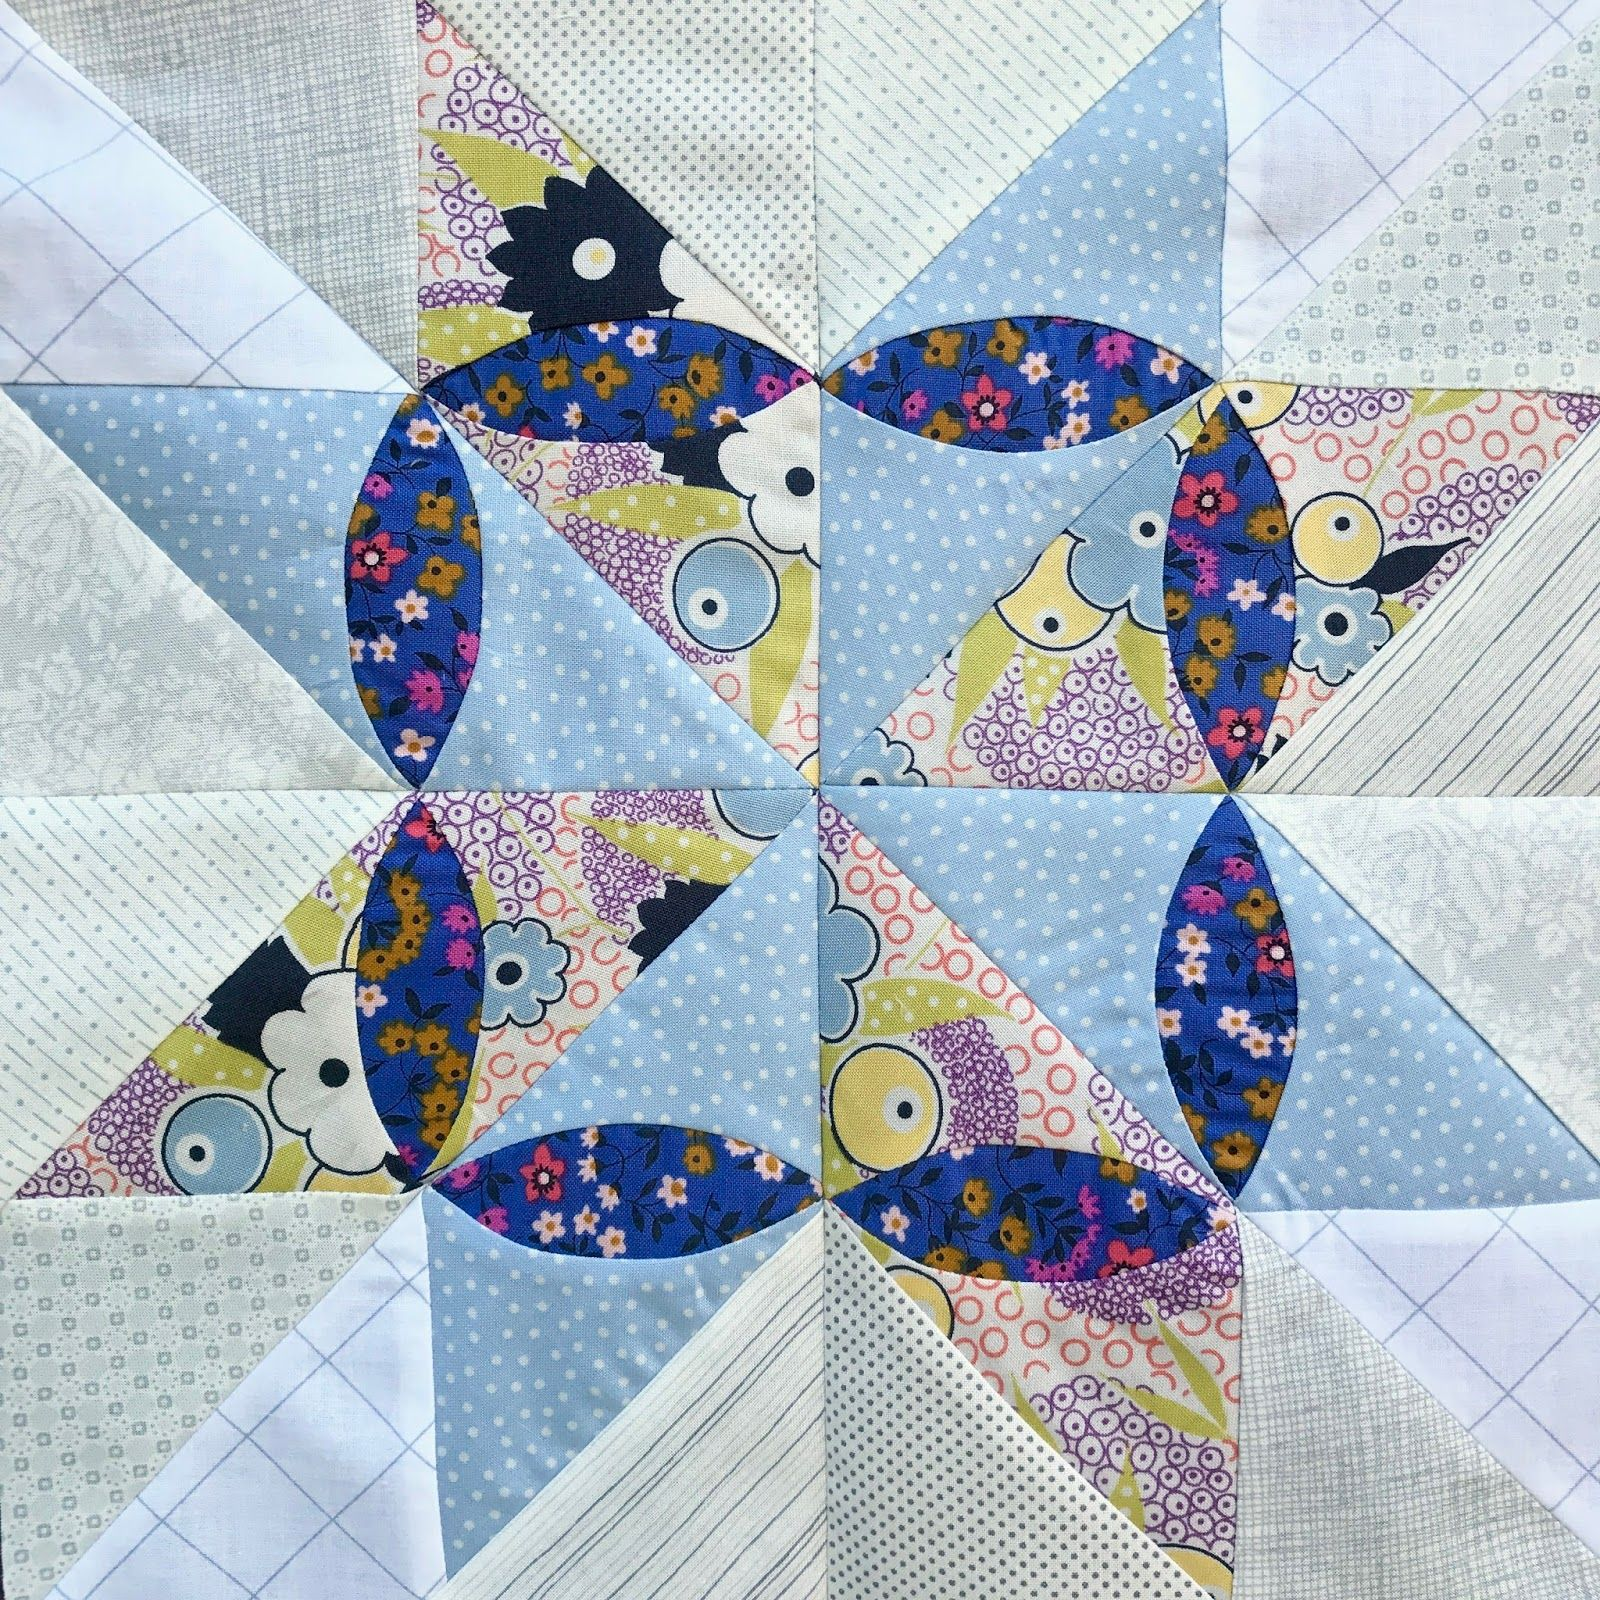 Block 4 of the Delilah Quilt template of the month program certainly